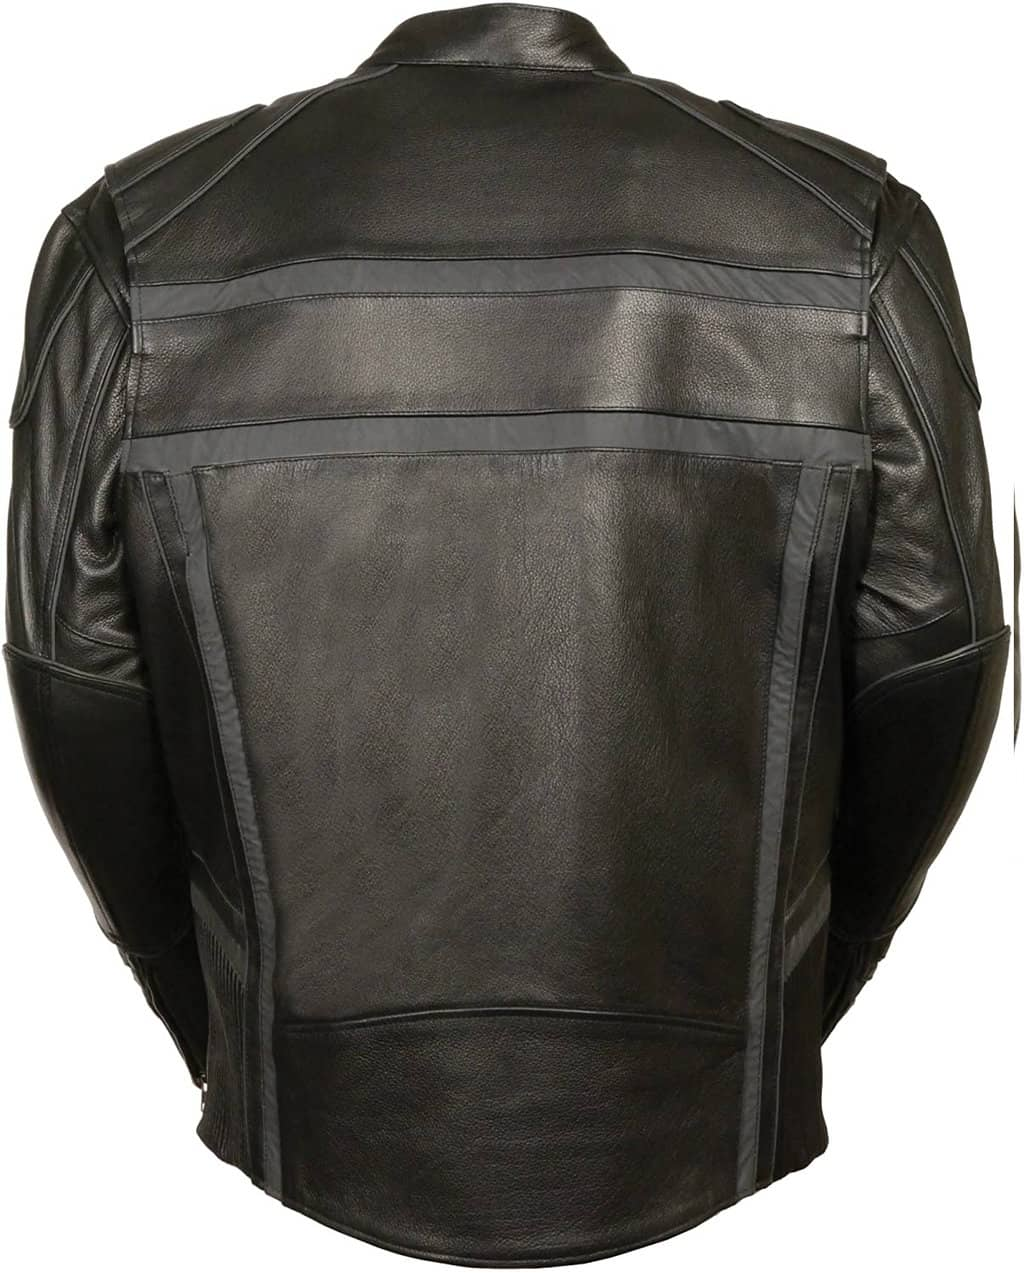 Milwaukee-ML2083-LG-BLACK-Men-Reflective-Band-and-Piping-Scooter-Leather-Jacket